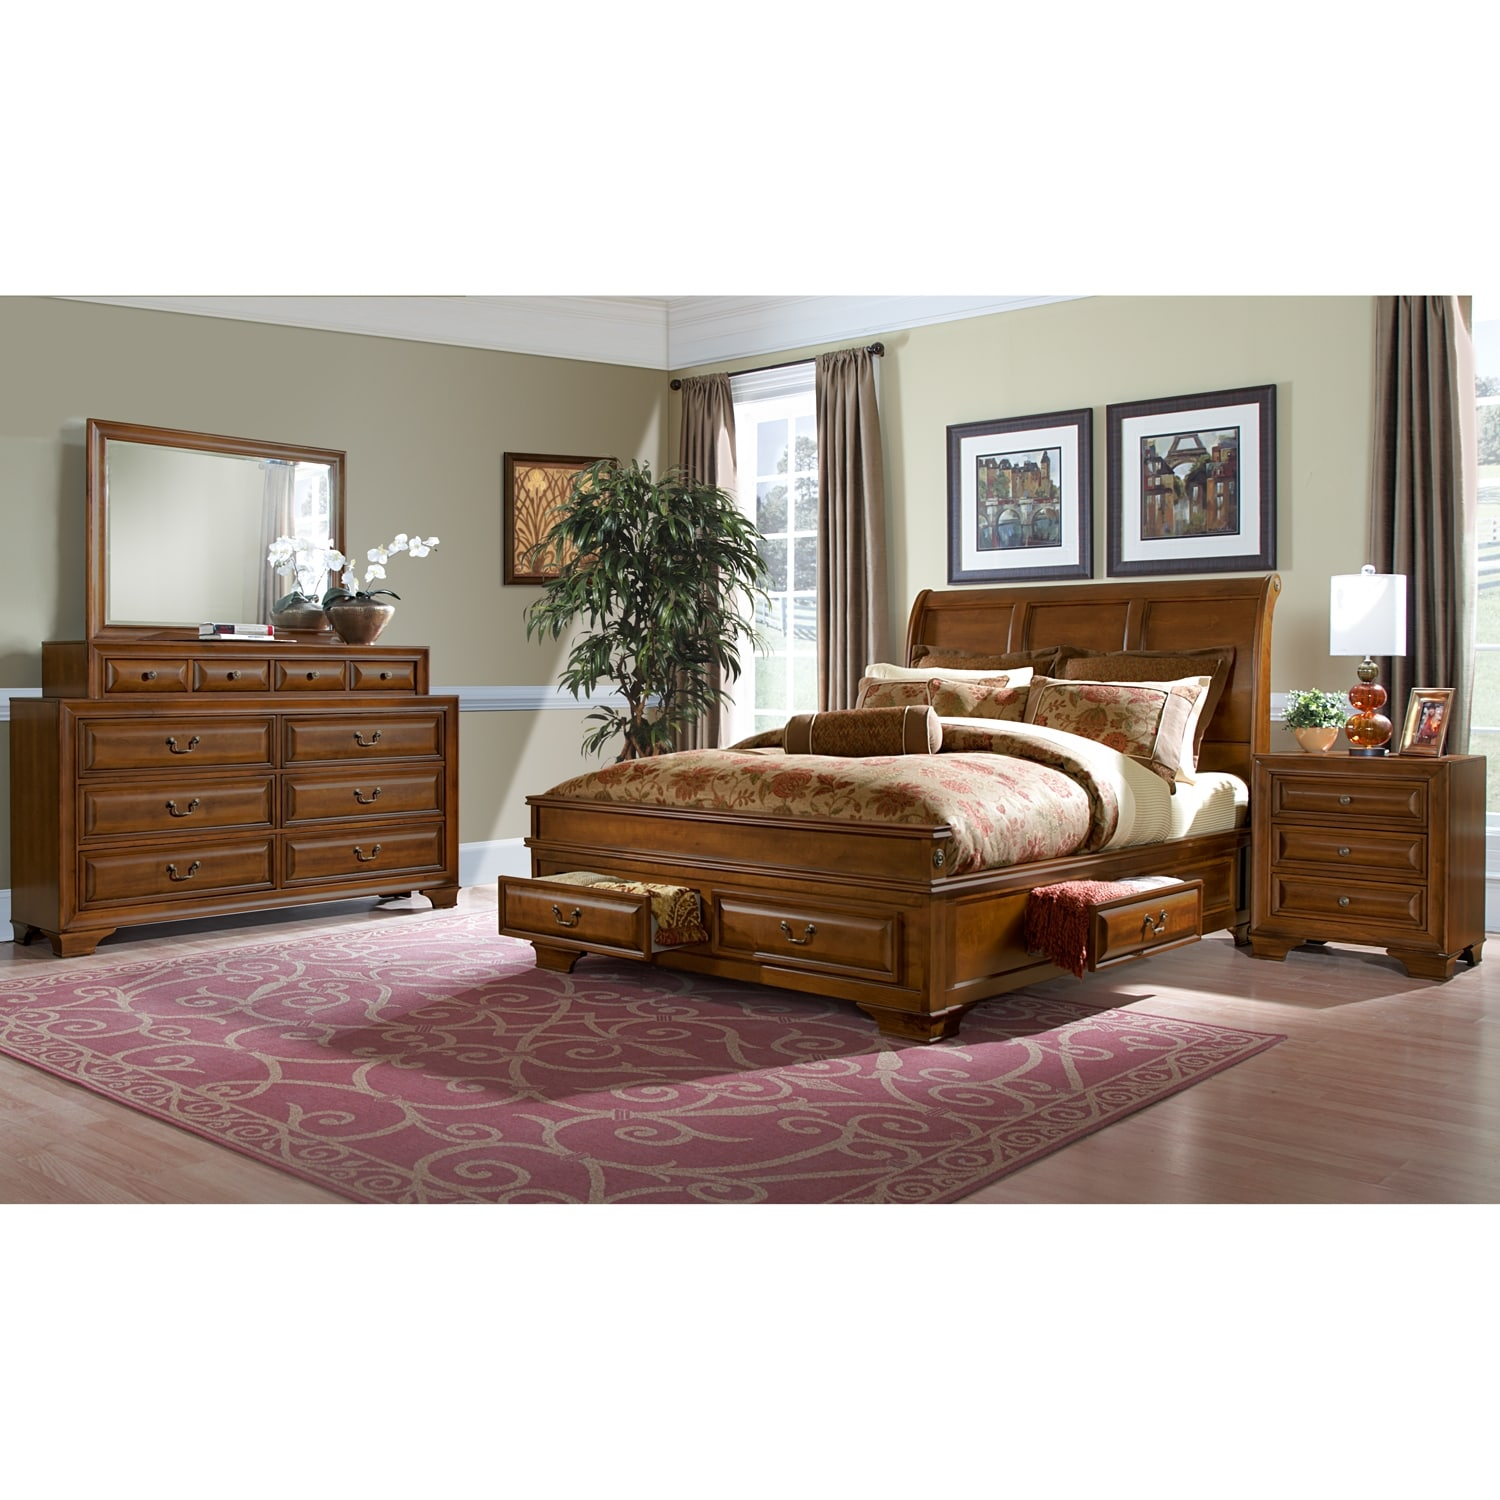 Sanibelle 6 Pc. Queen Storage Bedroom